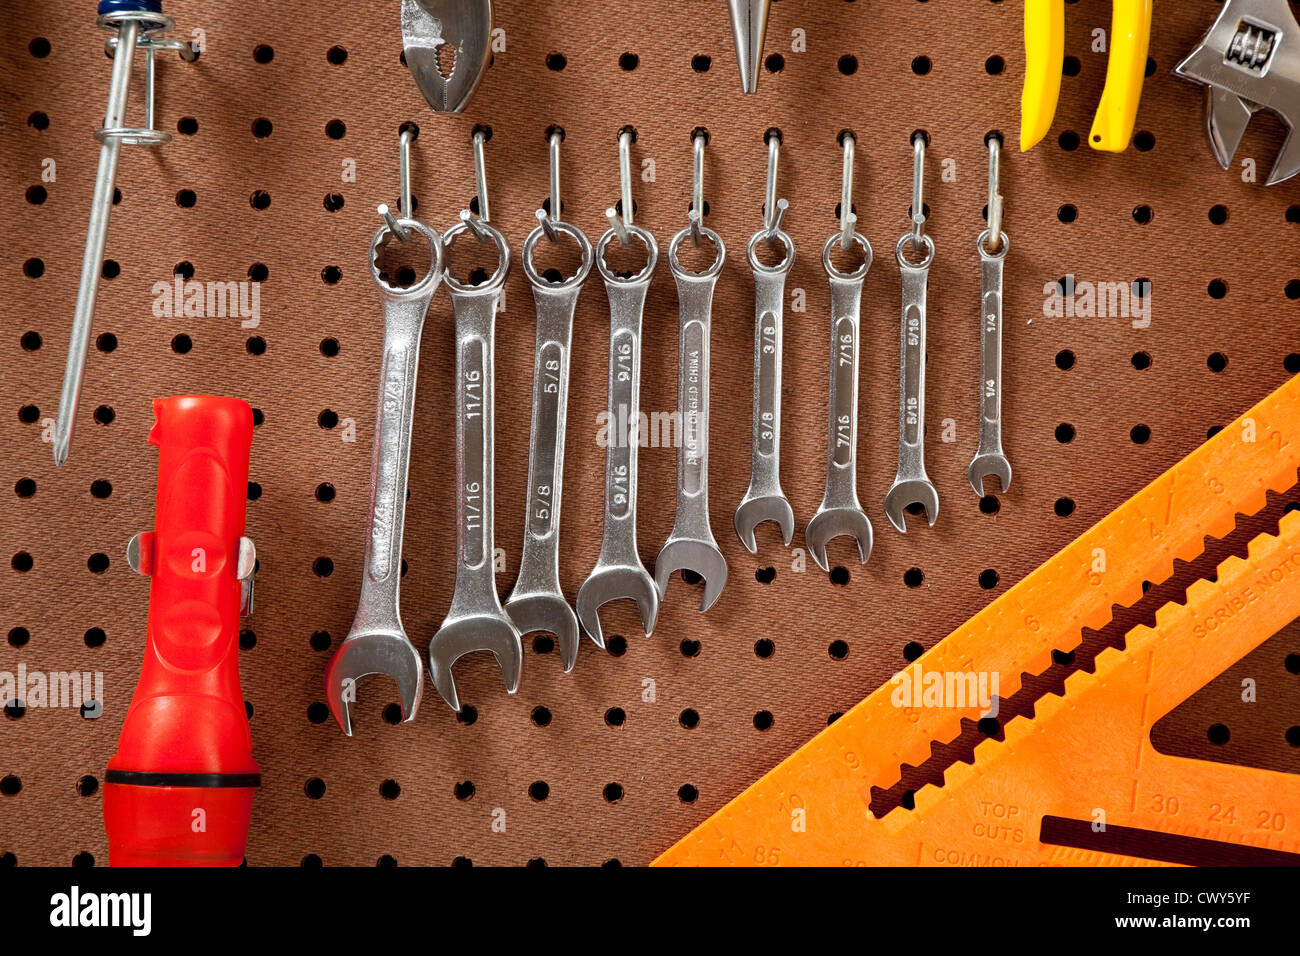 a peg board with assorted wrenches and various tools - Stock Image